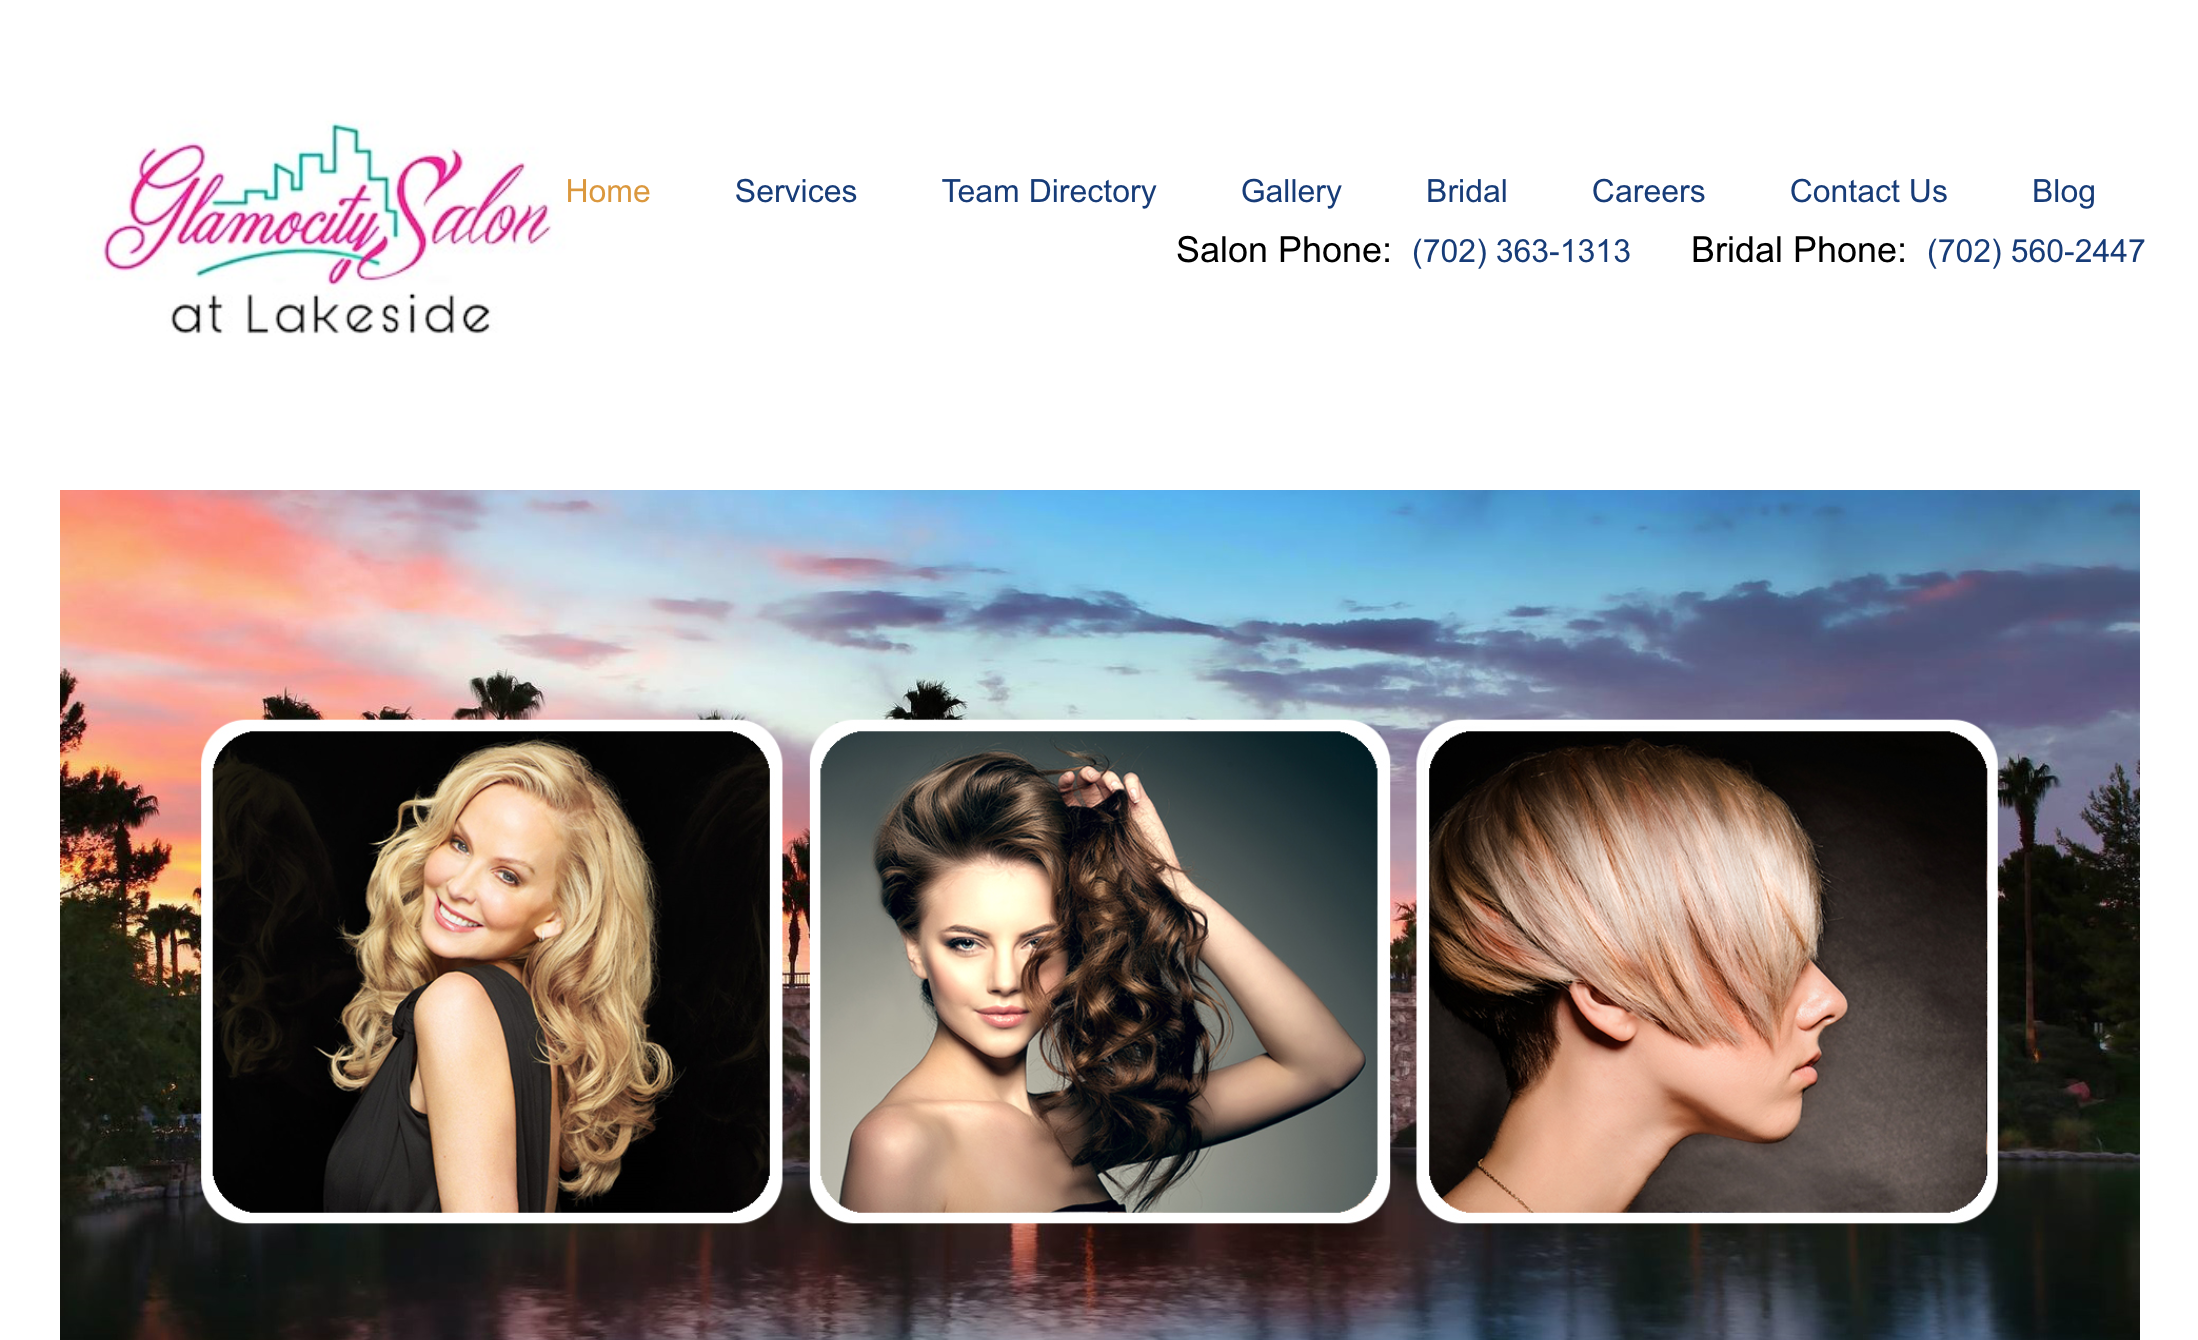 Glamocity Salon at Lakeside Website Home Page